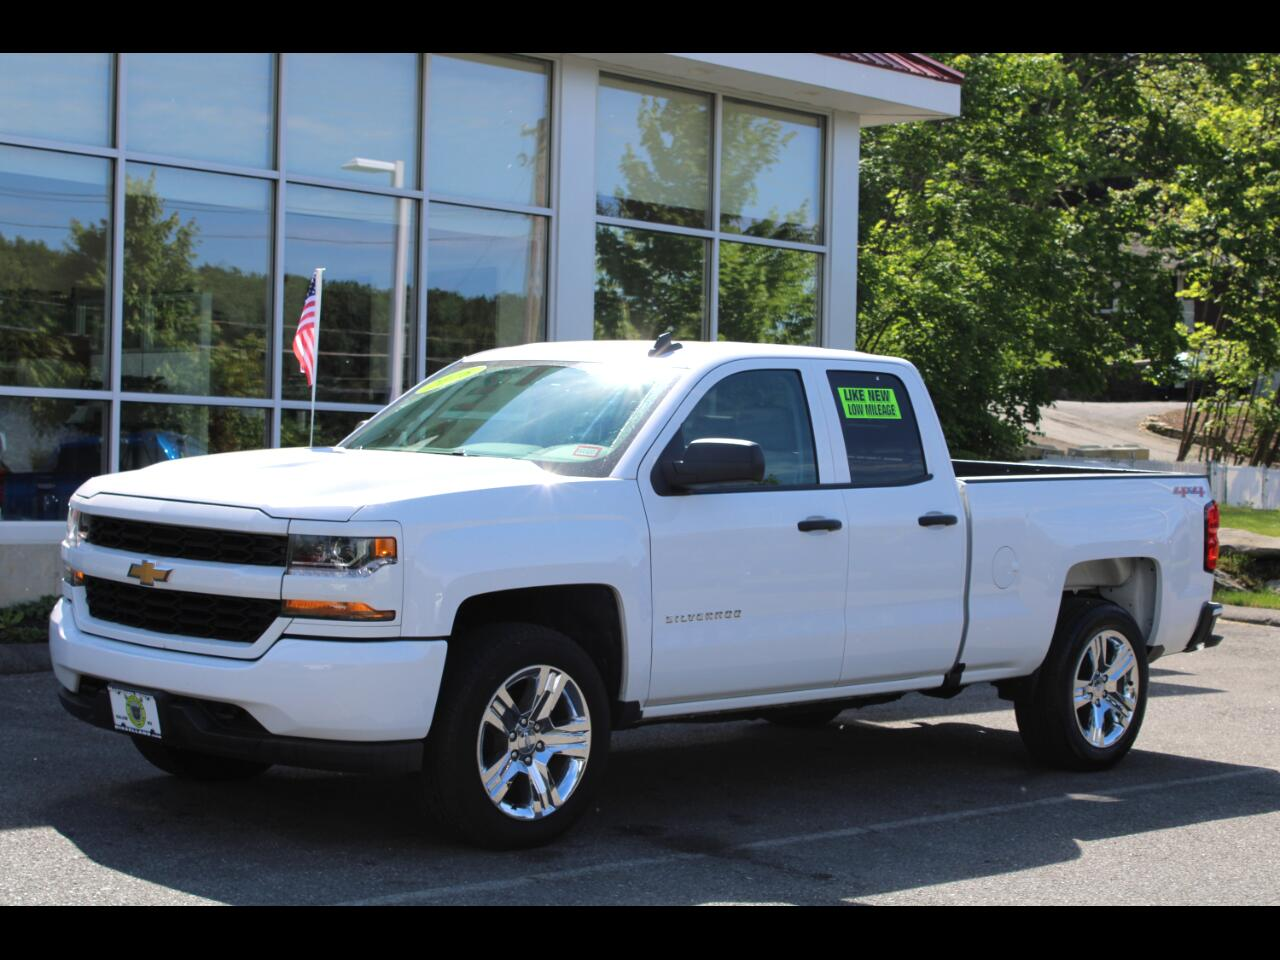 2016 Chevrolet Silverado 1500 LT 4WD 20 INCH FACTORY WHEELS ONLY 10,500 MILES !!